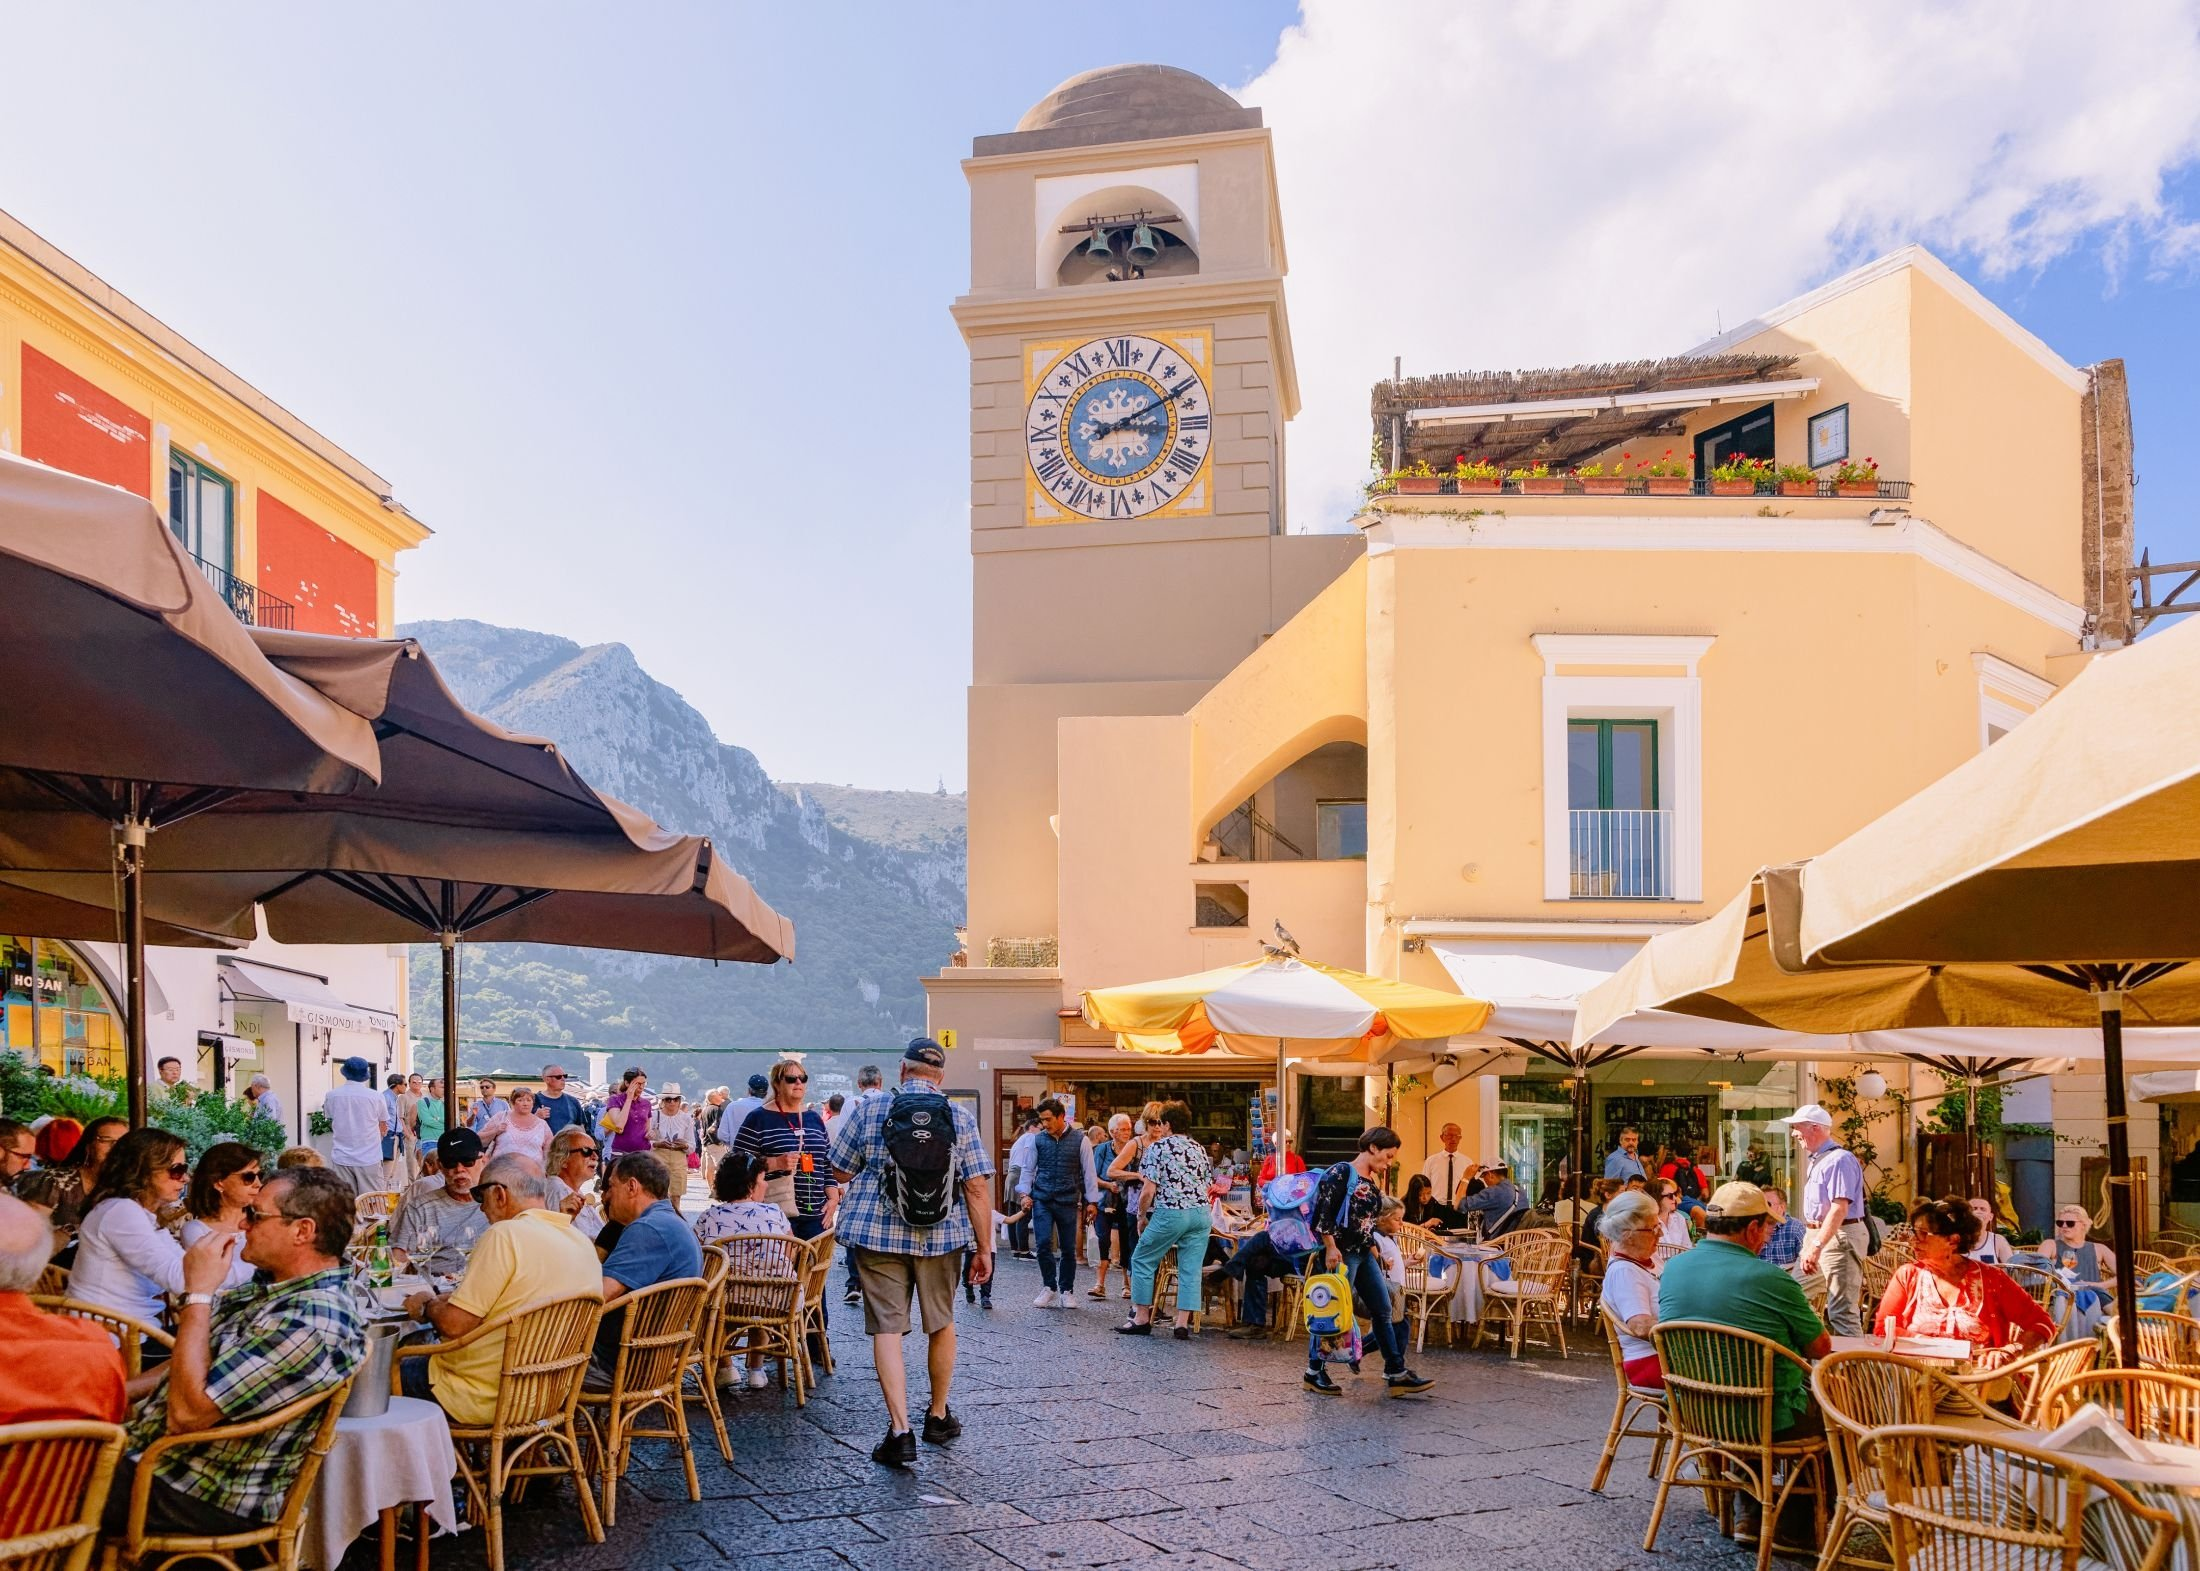 People sit and walk around at the Piazza Umberto I Square with Church of Santo Stefano in the background, on the island of Capri, Italy. (Shutterstock Photo)